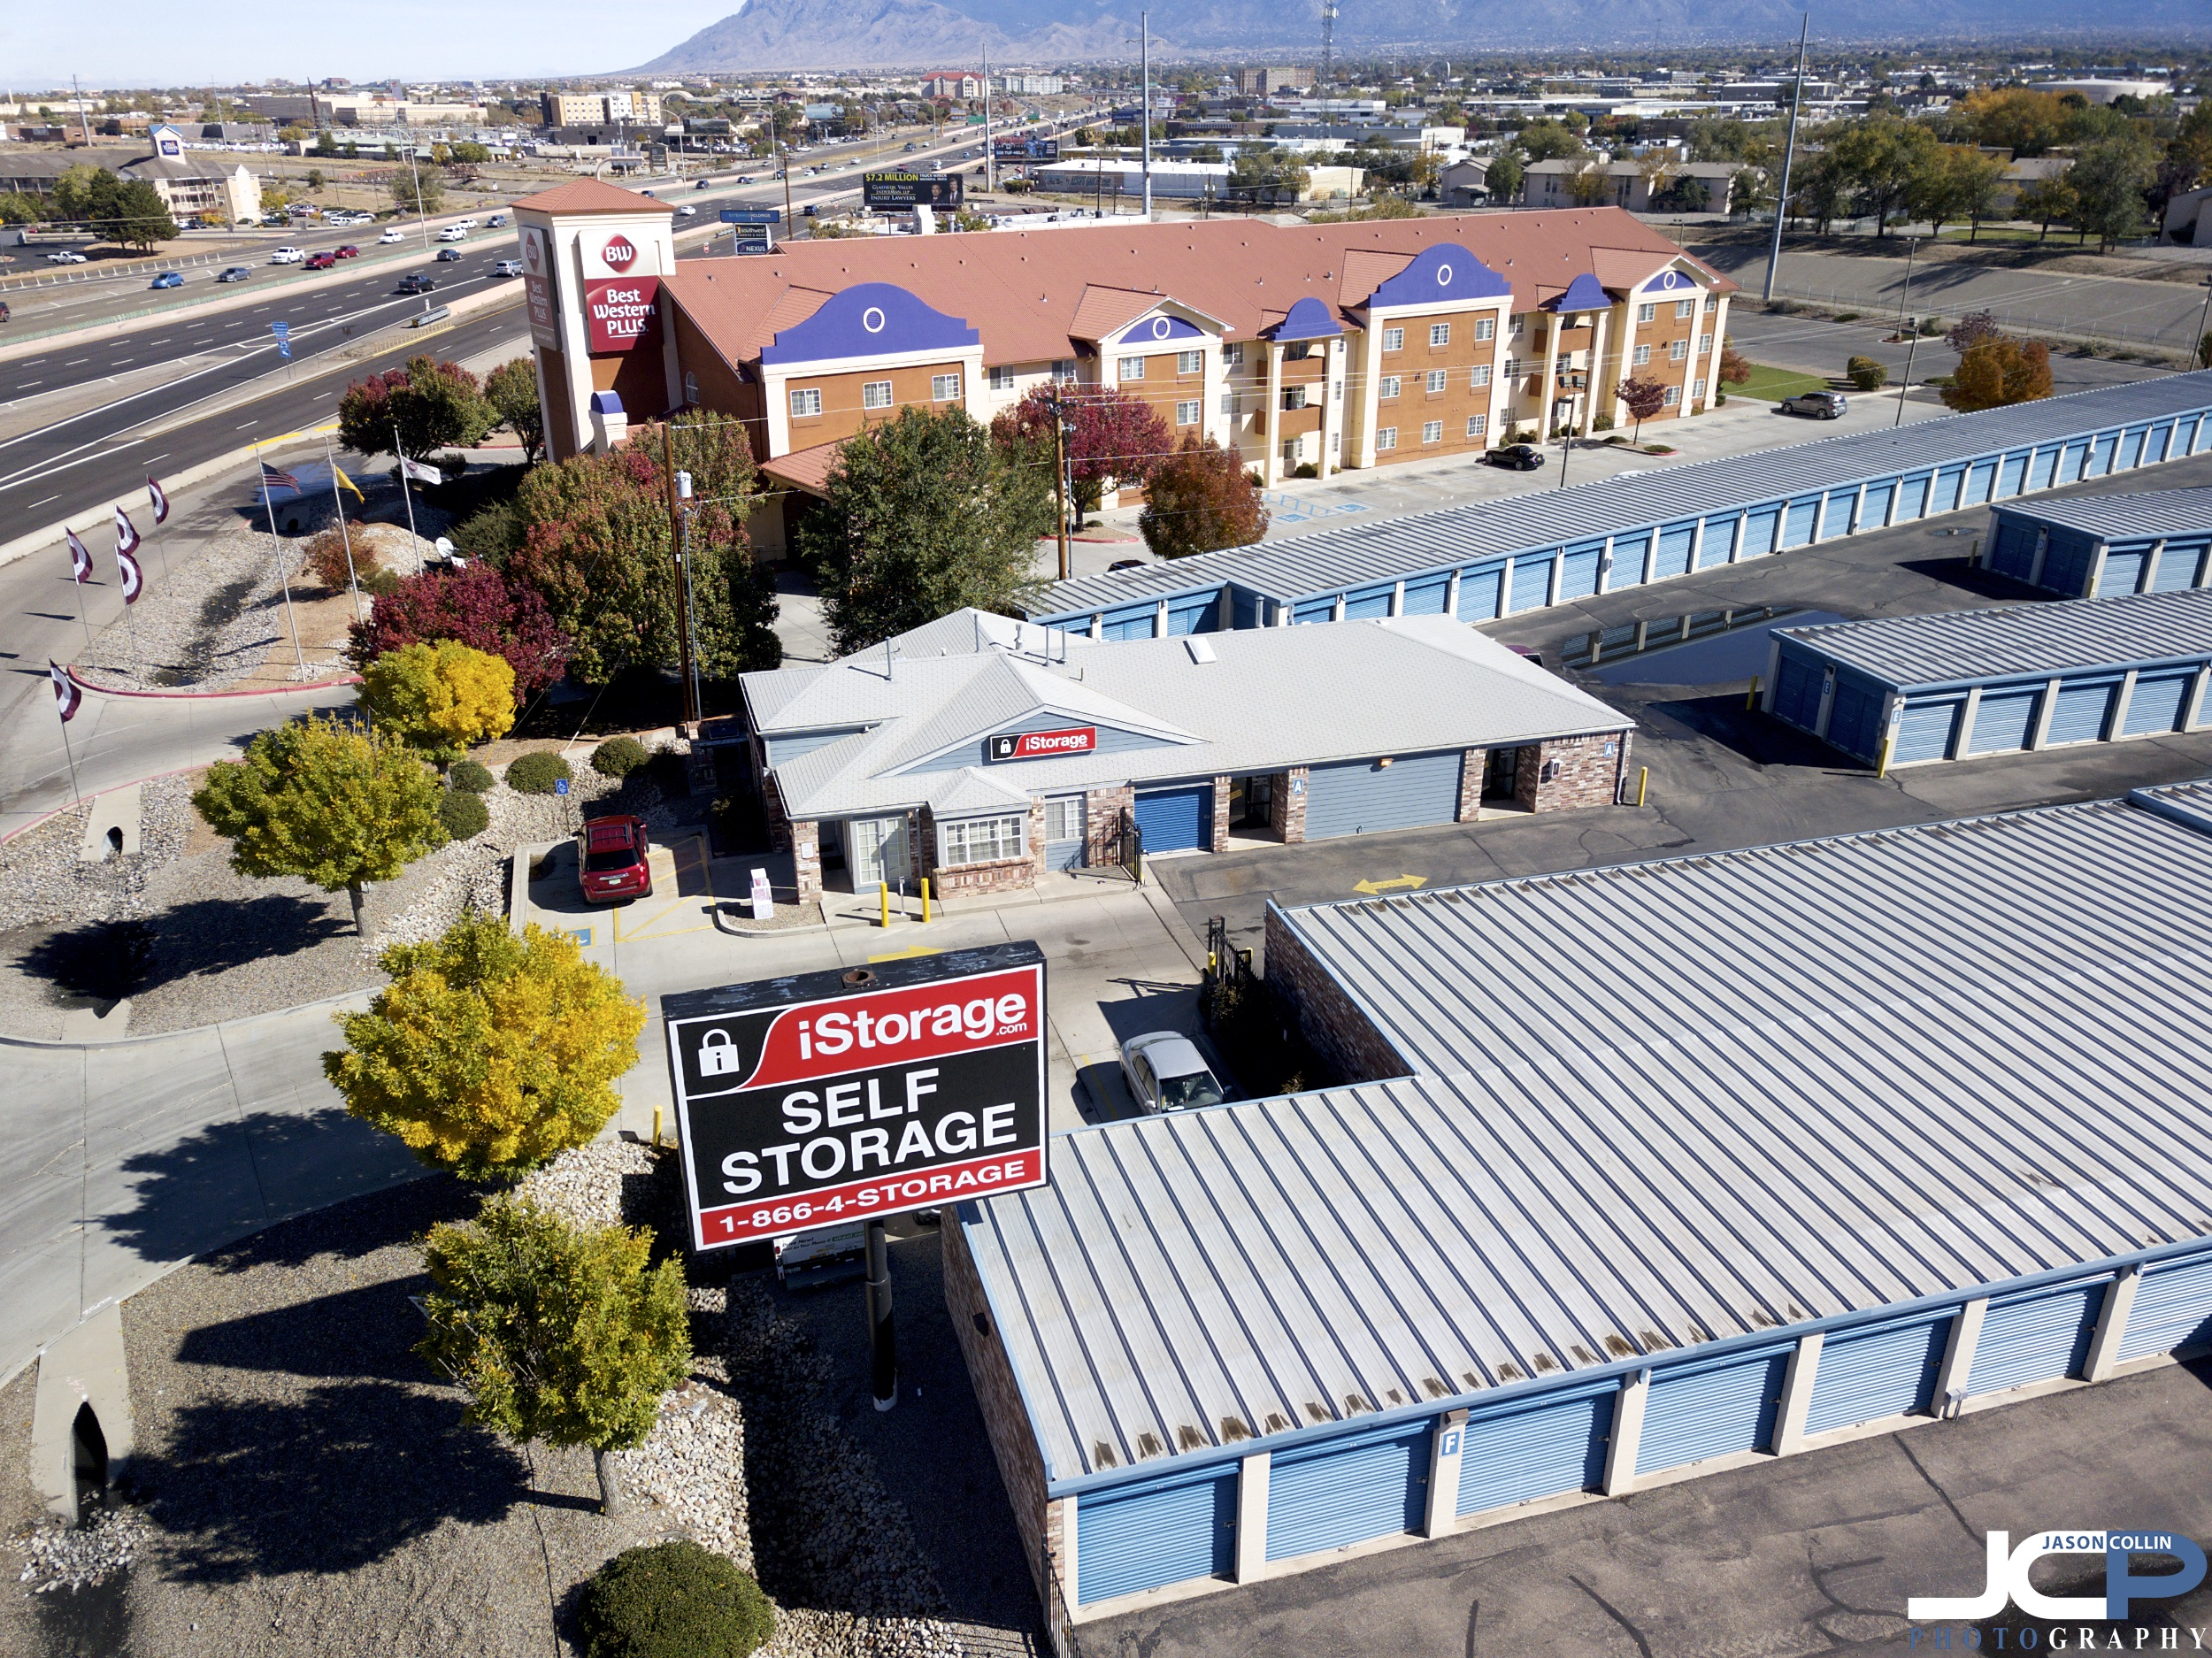 Drone aerial photo of a self storage business in Albuquerque, New Mexico -made with a DJI Mavic Pro